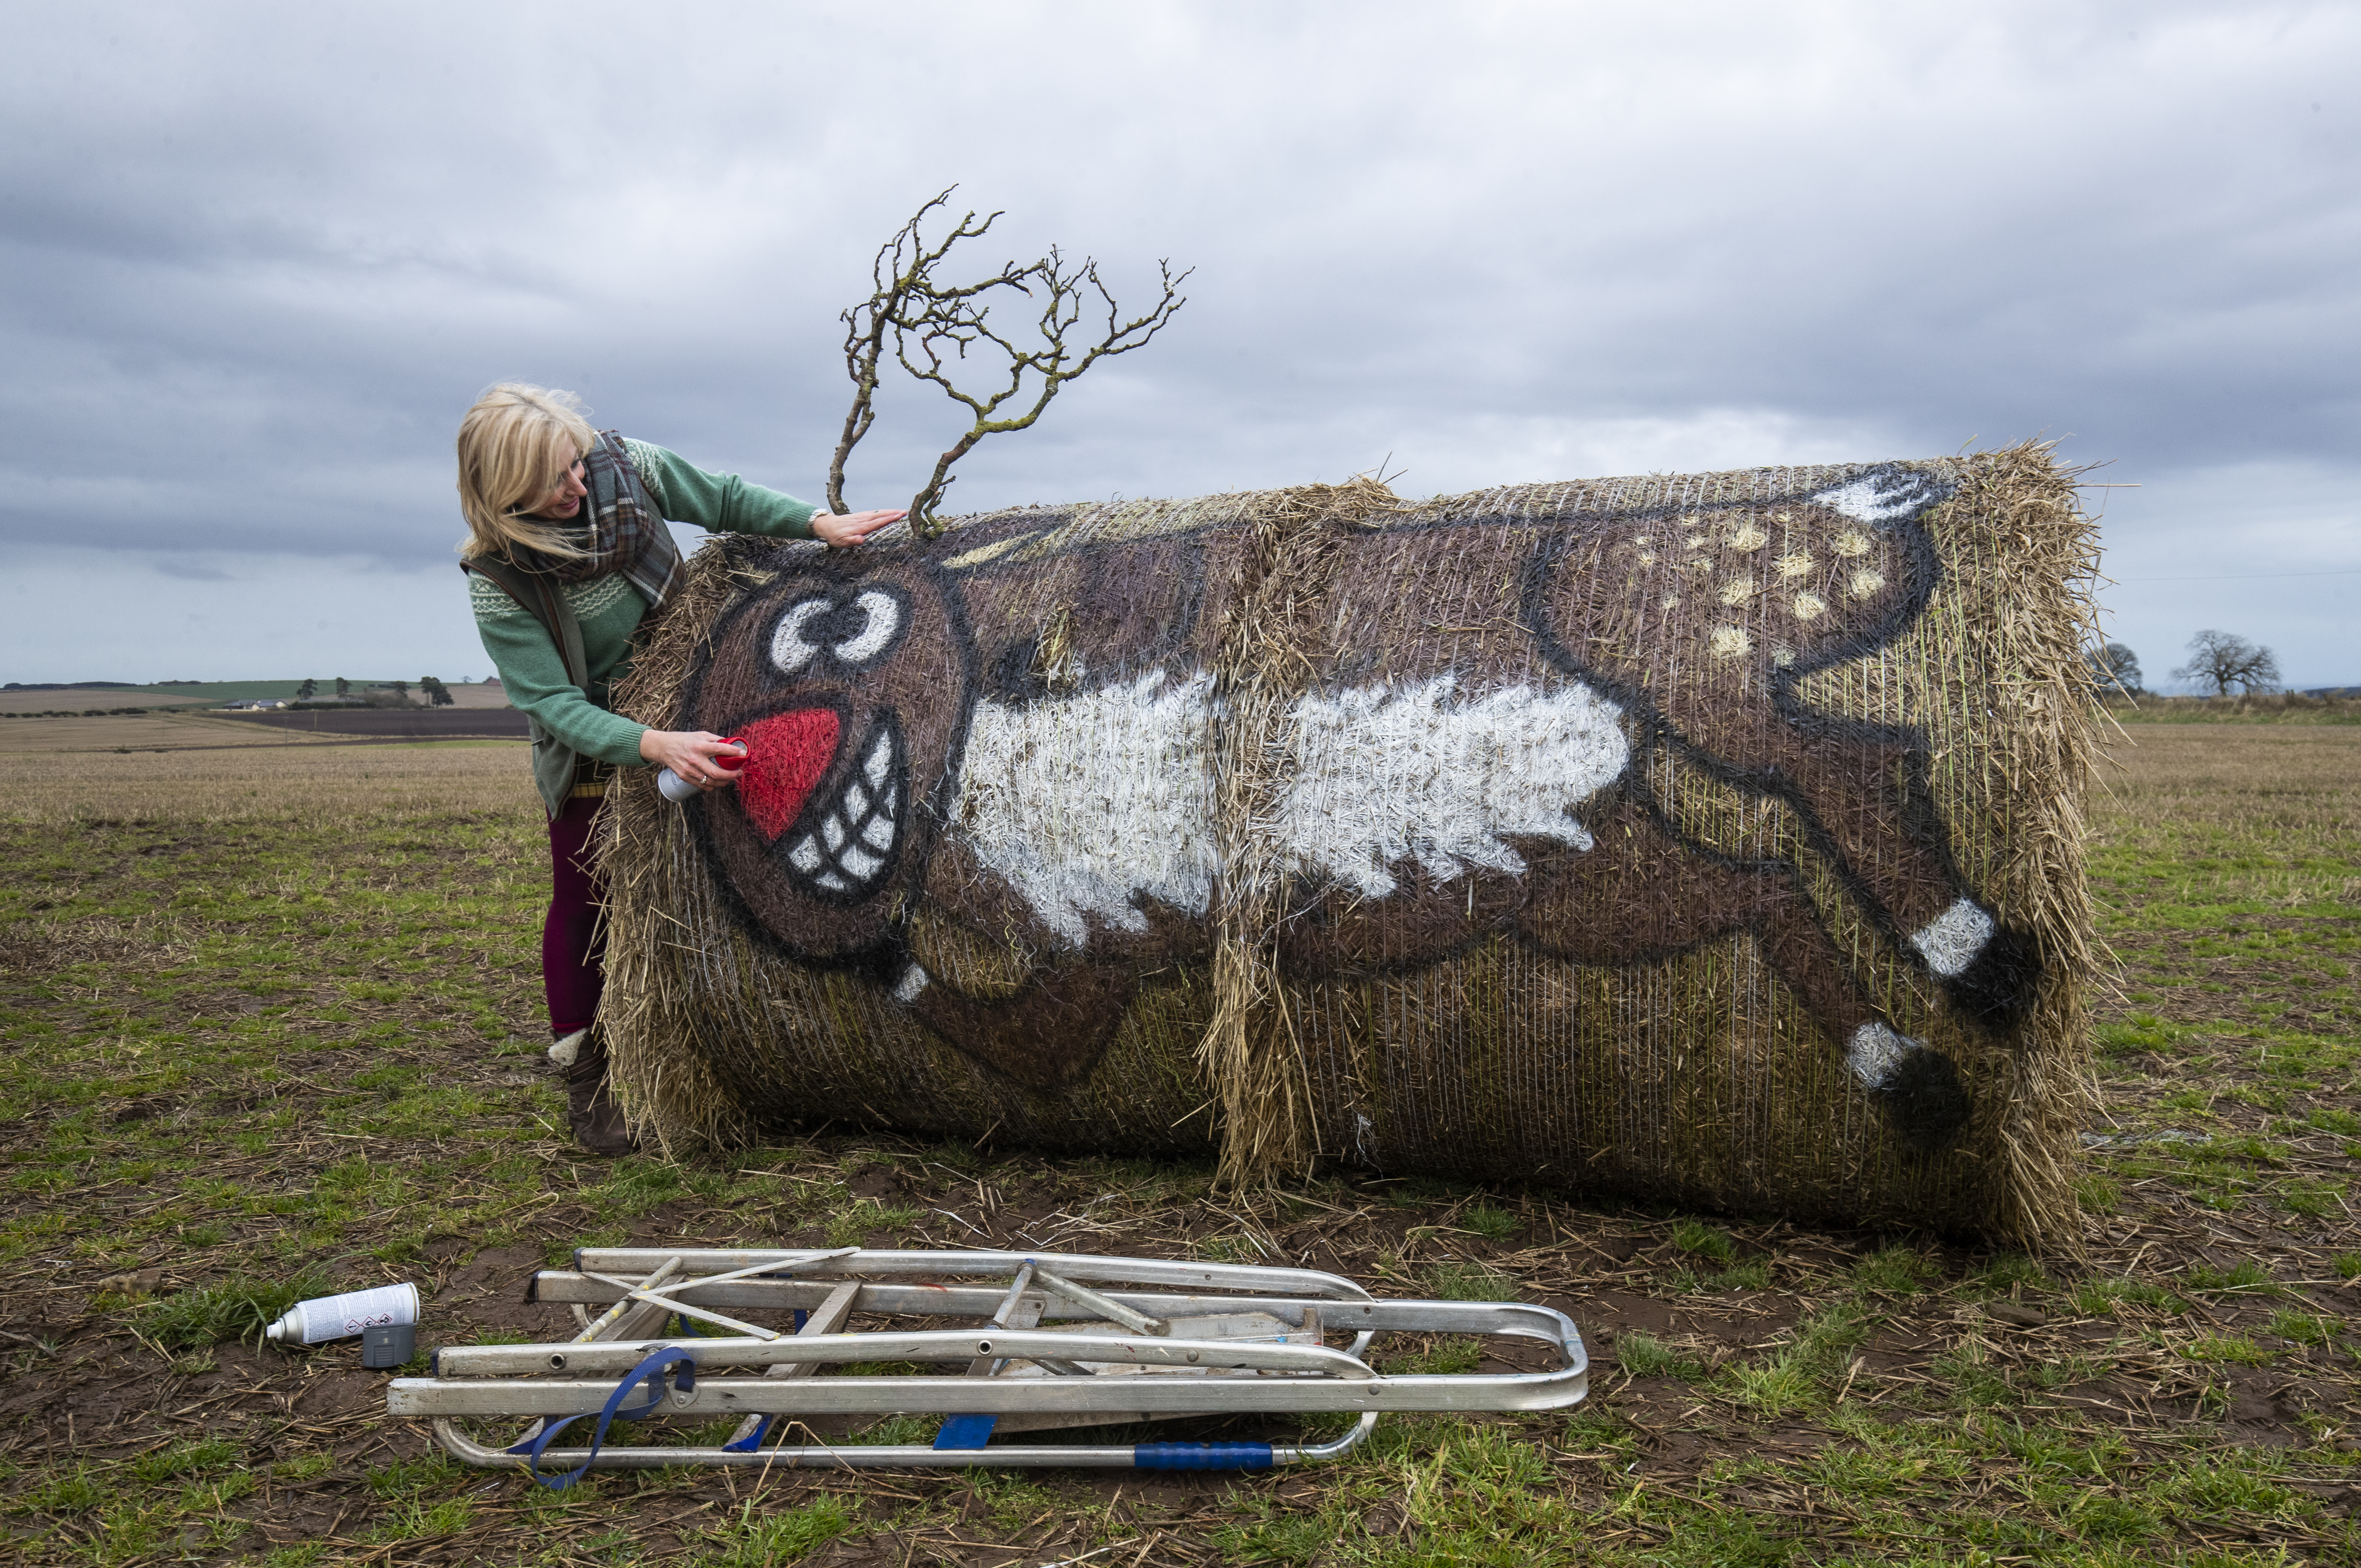 Farmer and artist Fleur Baxter with the Christmas character artworks she has created using hay bales on her farm in Carmyllie, Angus. Fleur, who has been nicknamed 'Balesy' by locals, allows members of the public to visit the bales in return for donations to the local food bank. (Photo by Jane Barlow/PA Images via Getty Images)